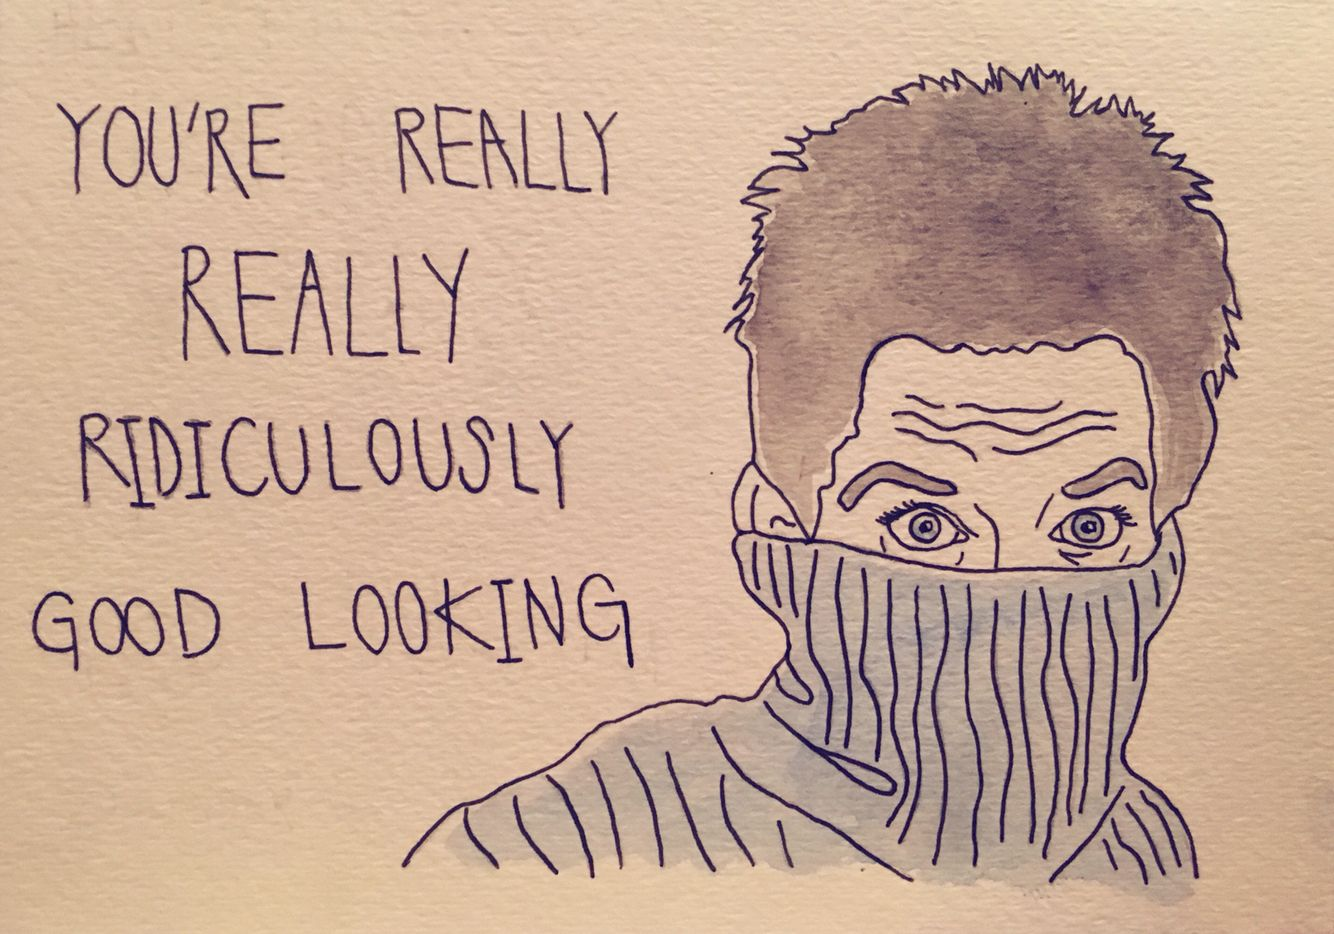 Funny Zoolander Quote And Illustration Zoolander Quotes How To Look Better Male Sketch